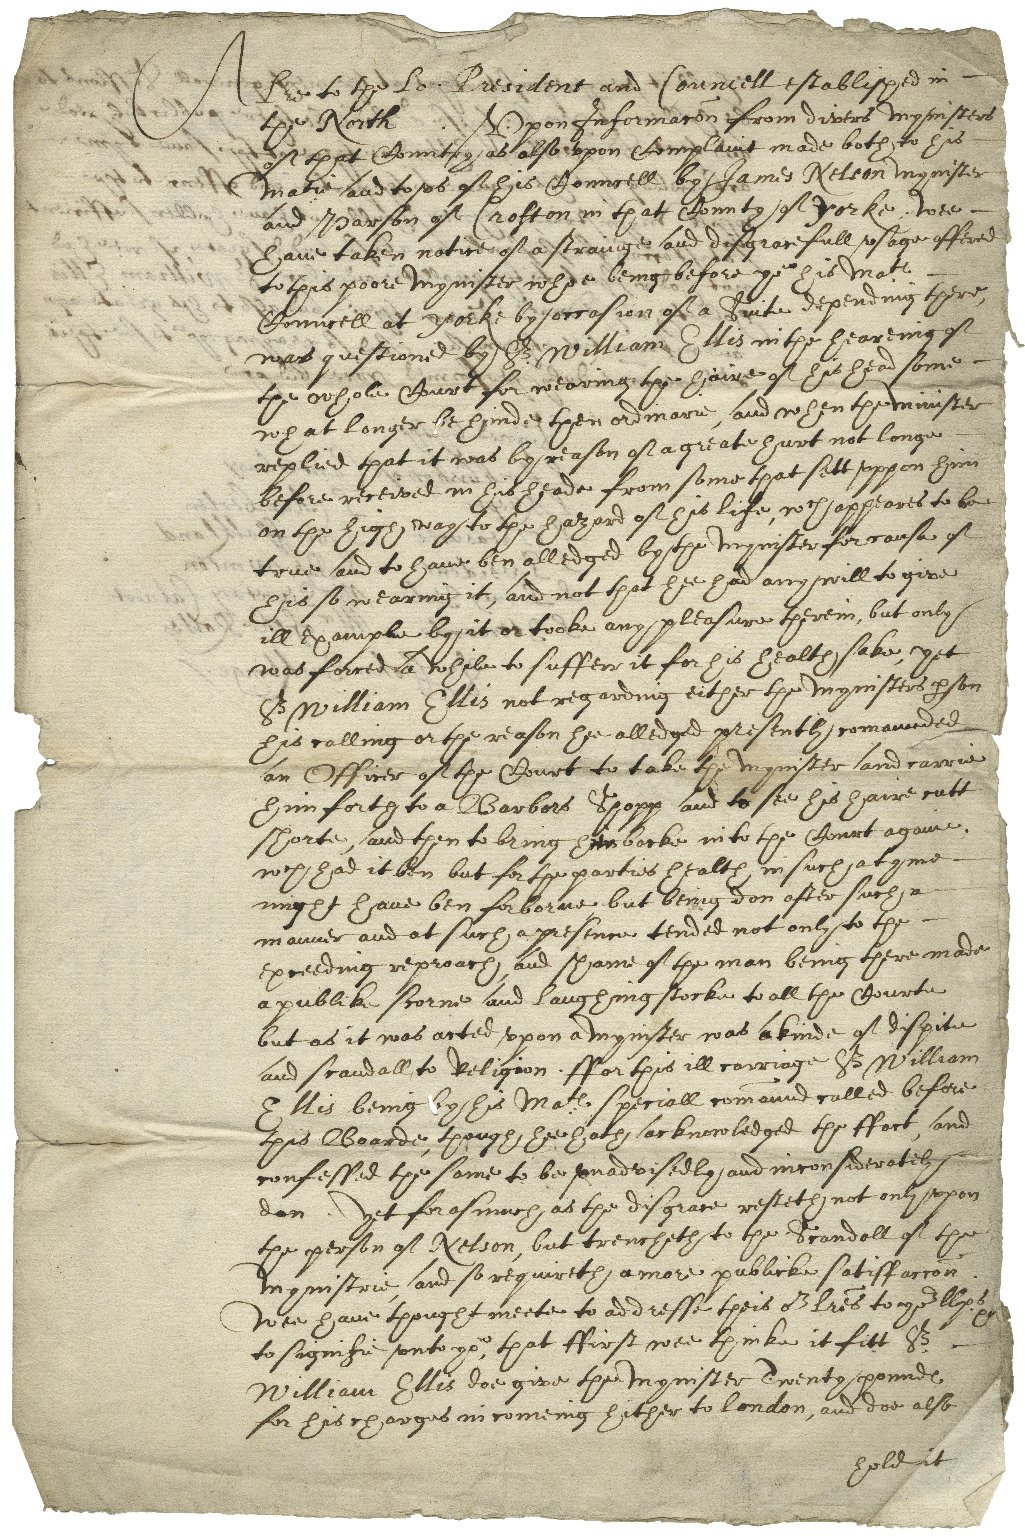 """Copy of a Privy Council order to Sir William Ellis, member of the King's Council at York, July 15, 1622, ordering him to a barber because he wore """"the haire of his head some what longer behinde then ordinarie..."""""""